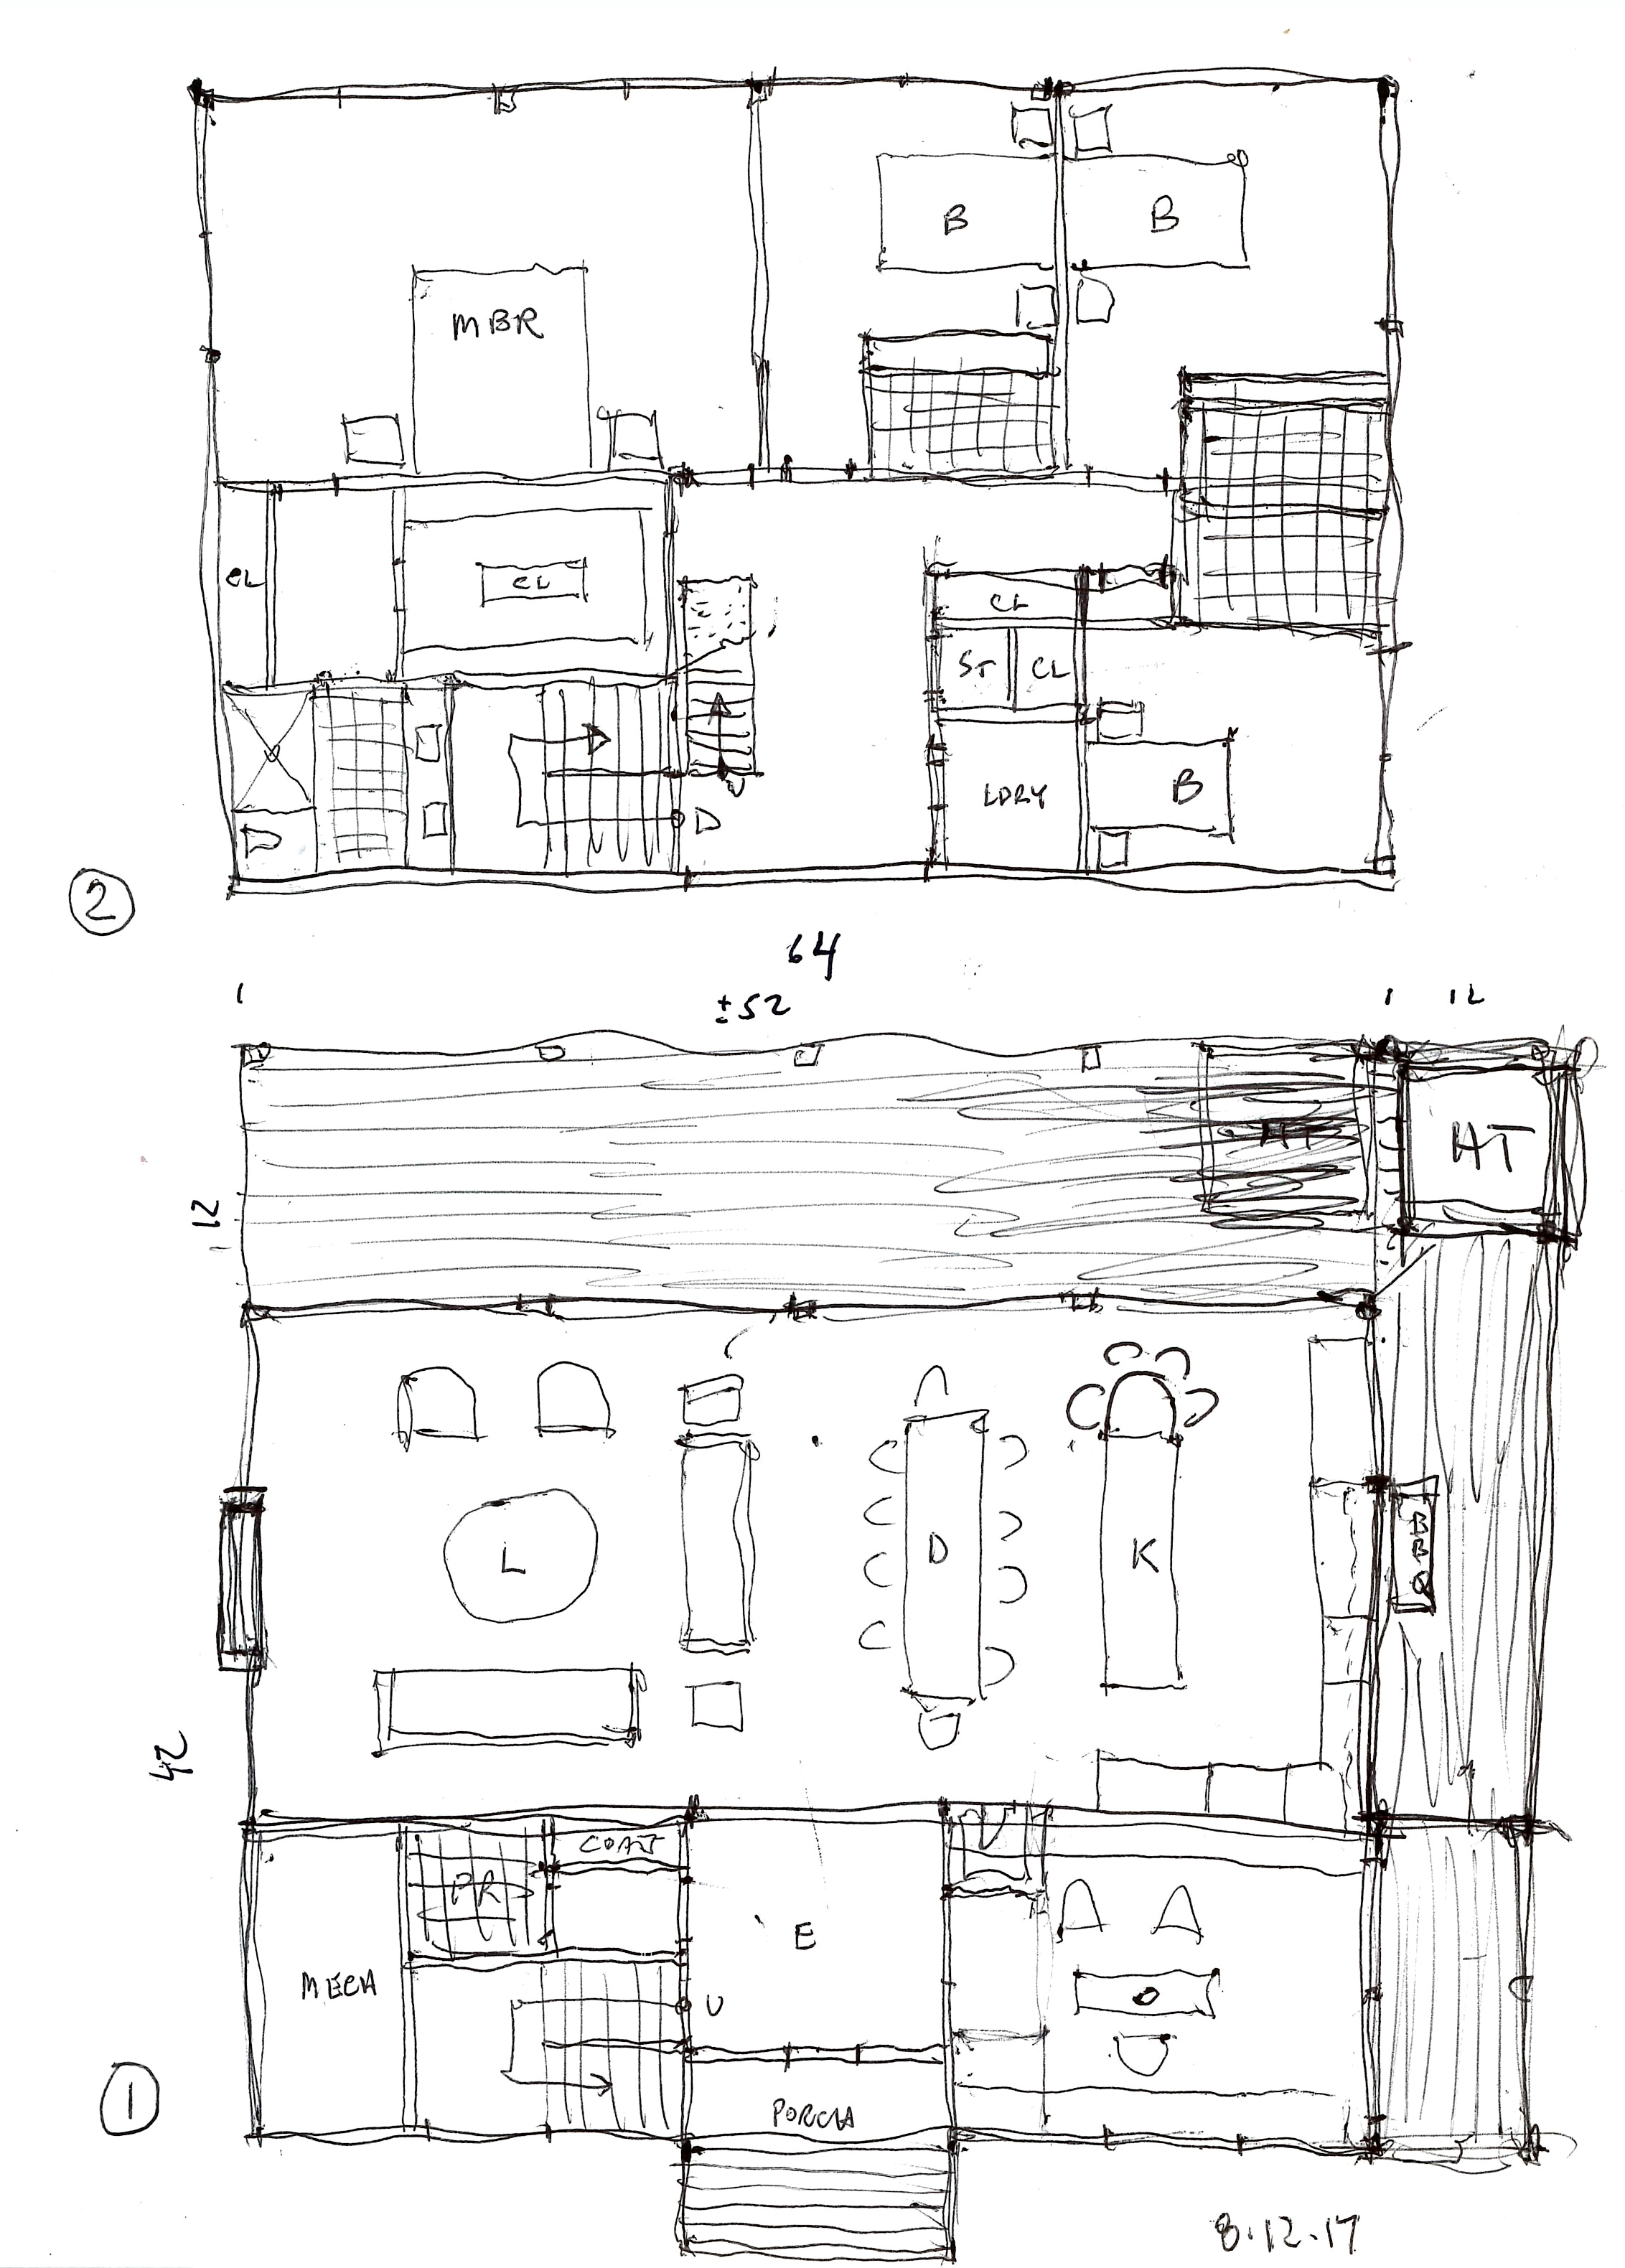 Floor plan sketches of the new Granoff residence.  Image courtesy Rich Granoff